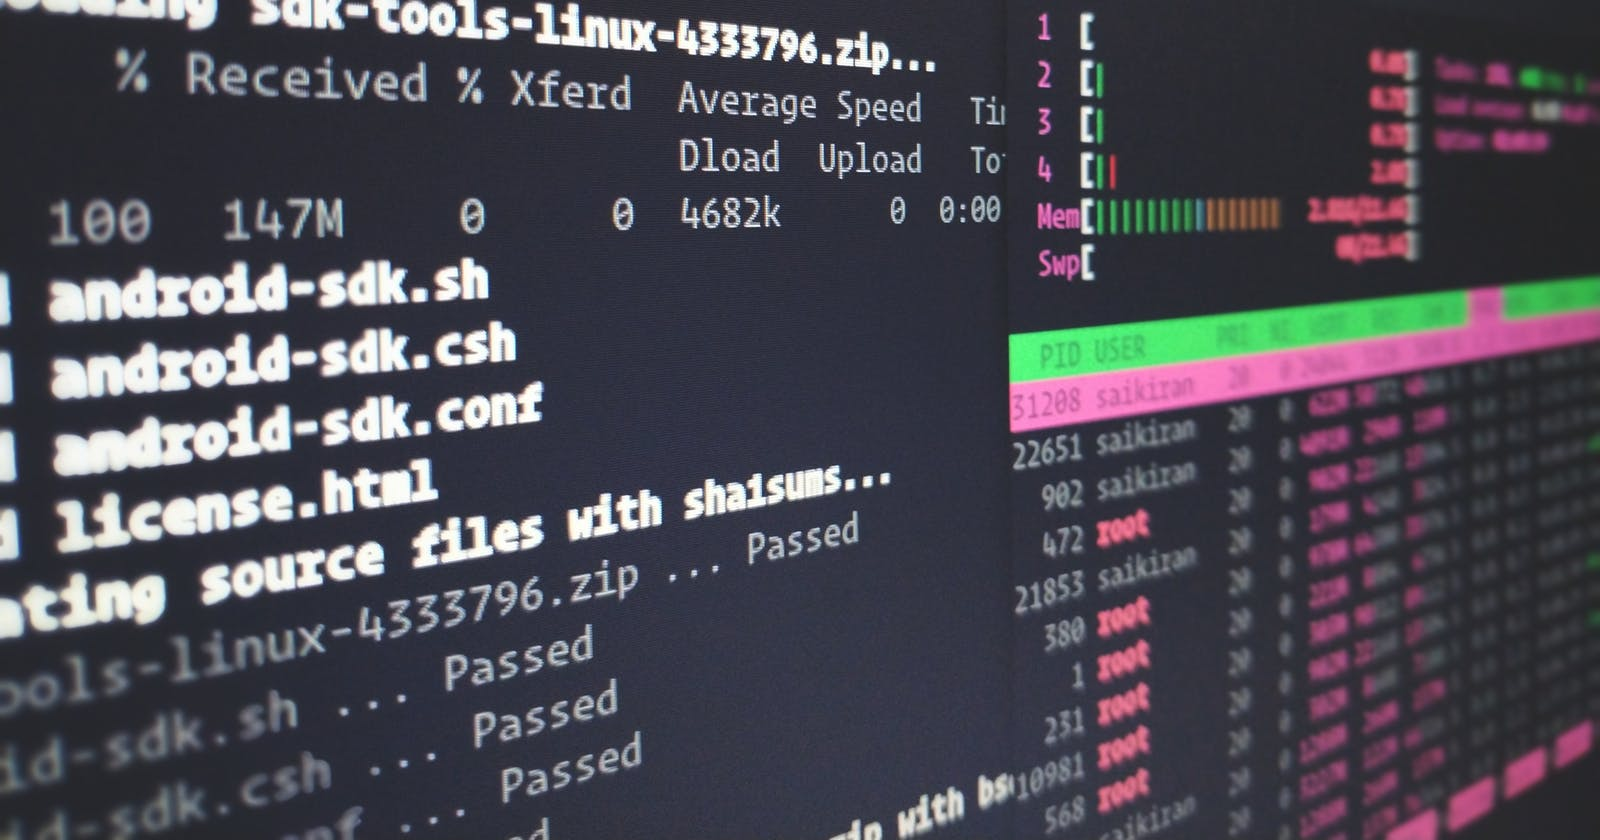 How to Make Command Aliases in Bash